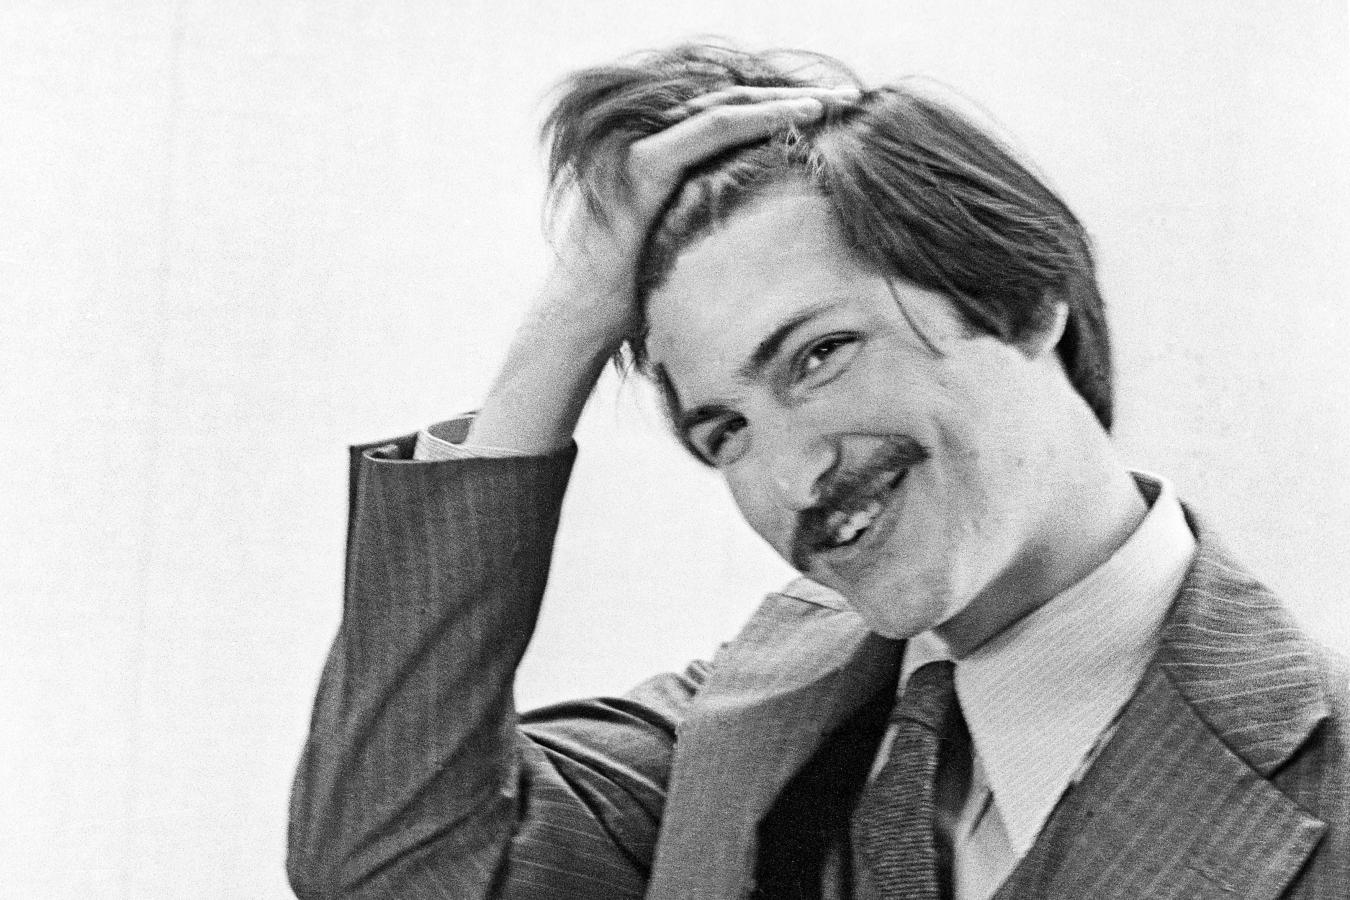 Steve Jobs documentary by Oscar-winning filmmaker to premiere at SXSW 2015